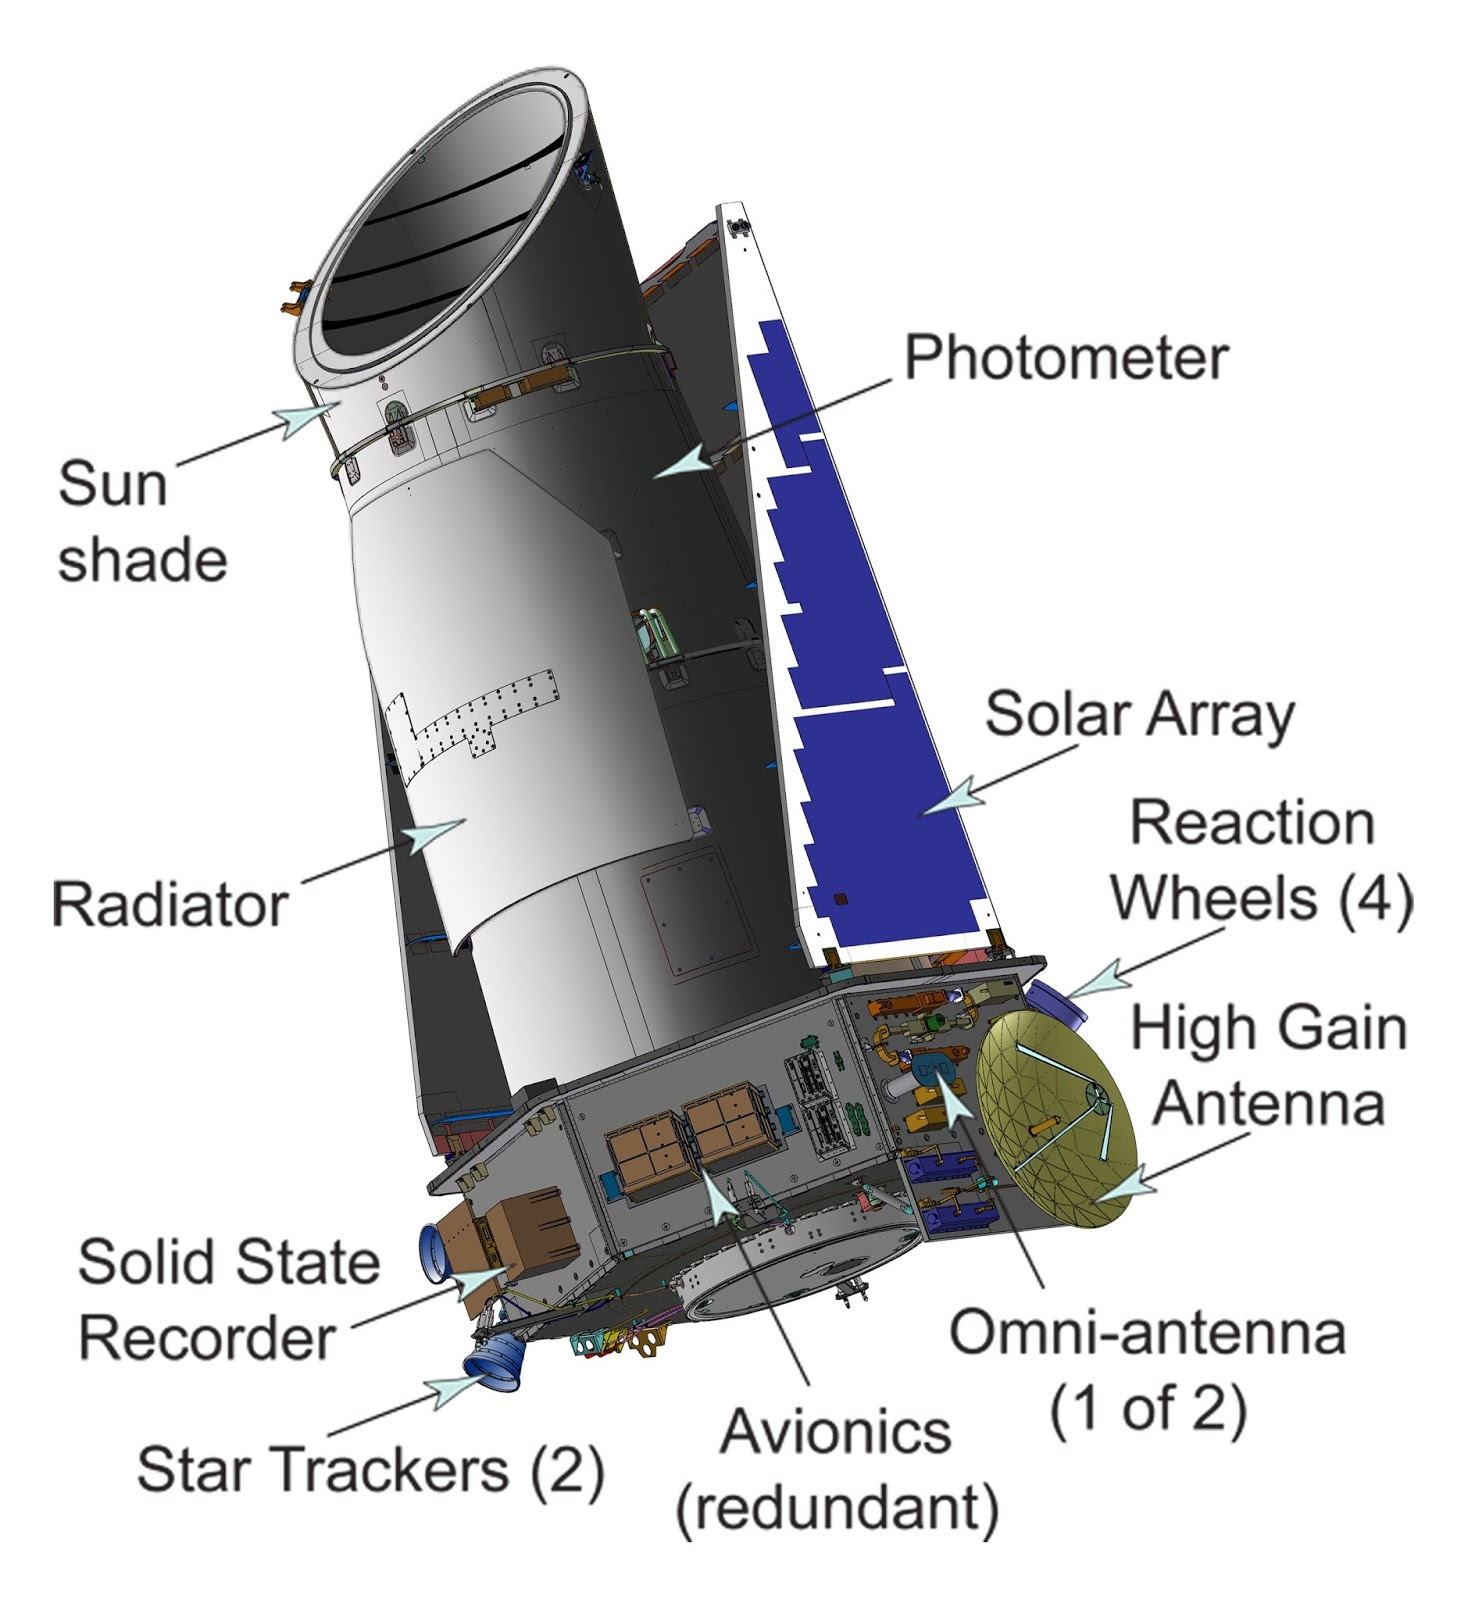 Astronomy And Space News Astro Watch Kepler Mission